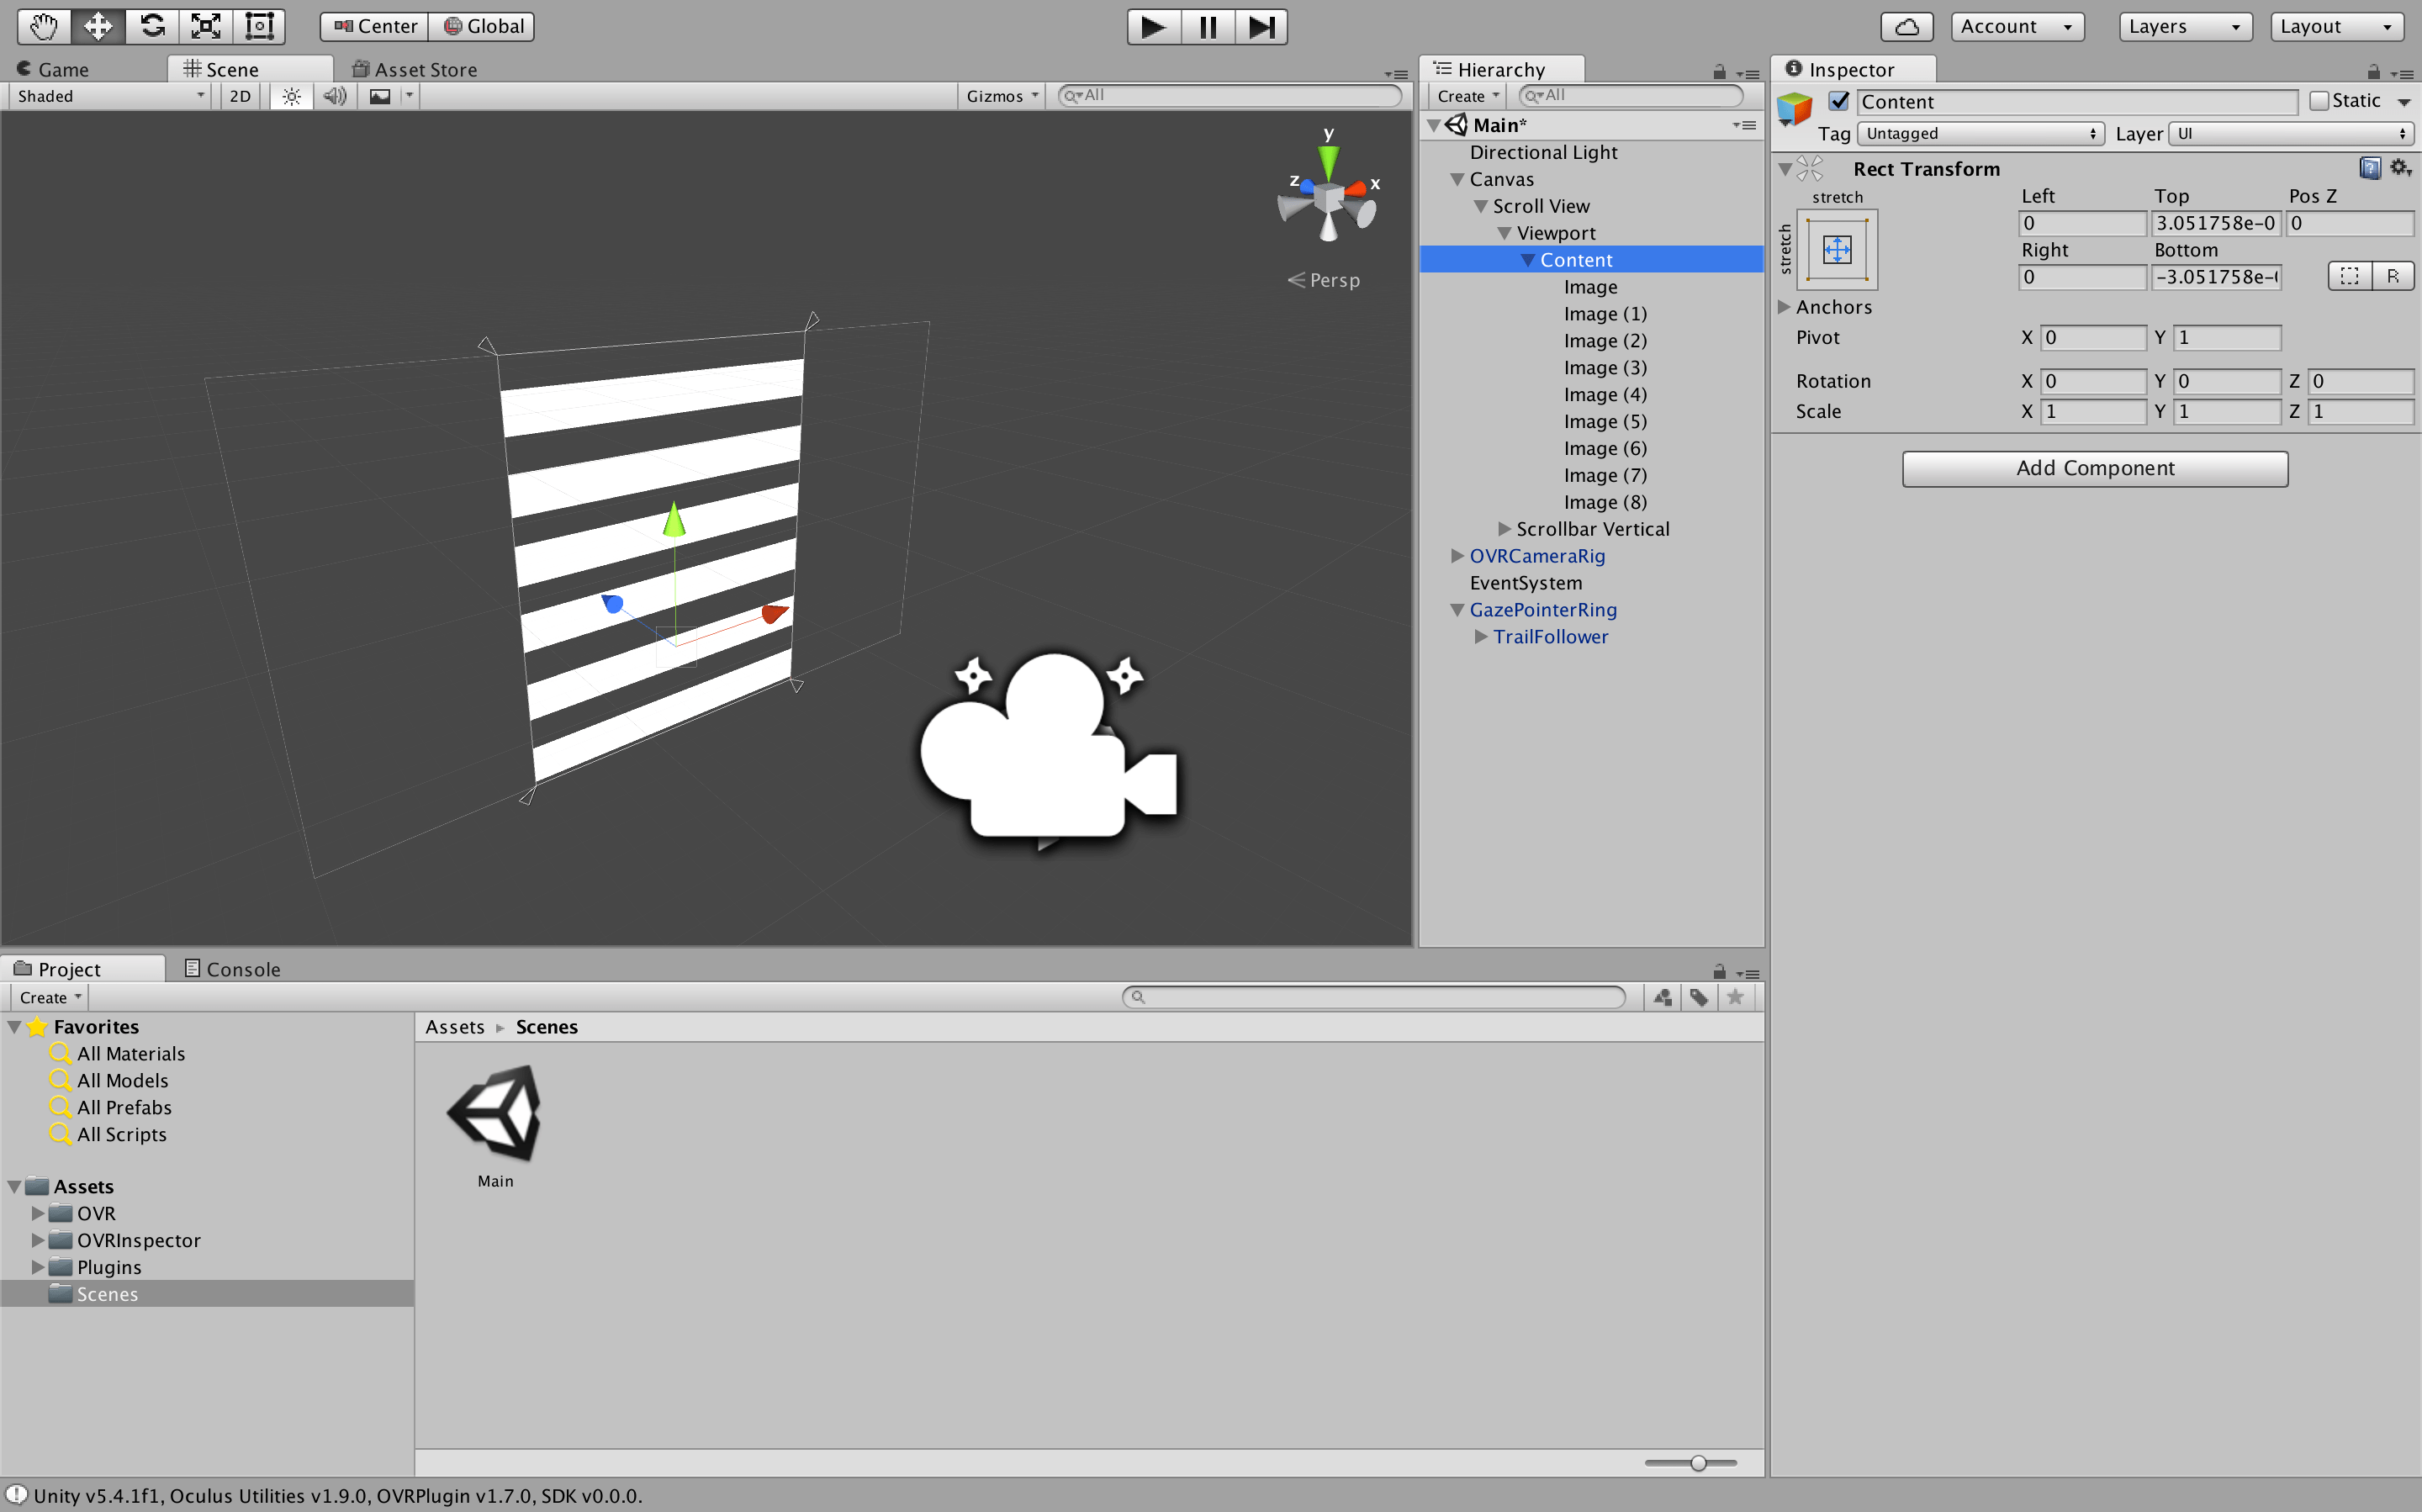 How to handle UI Events in Unity for VR VR Tutorials to Help Build